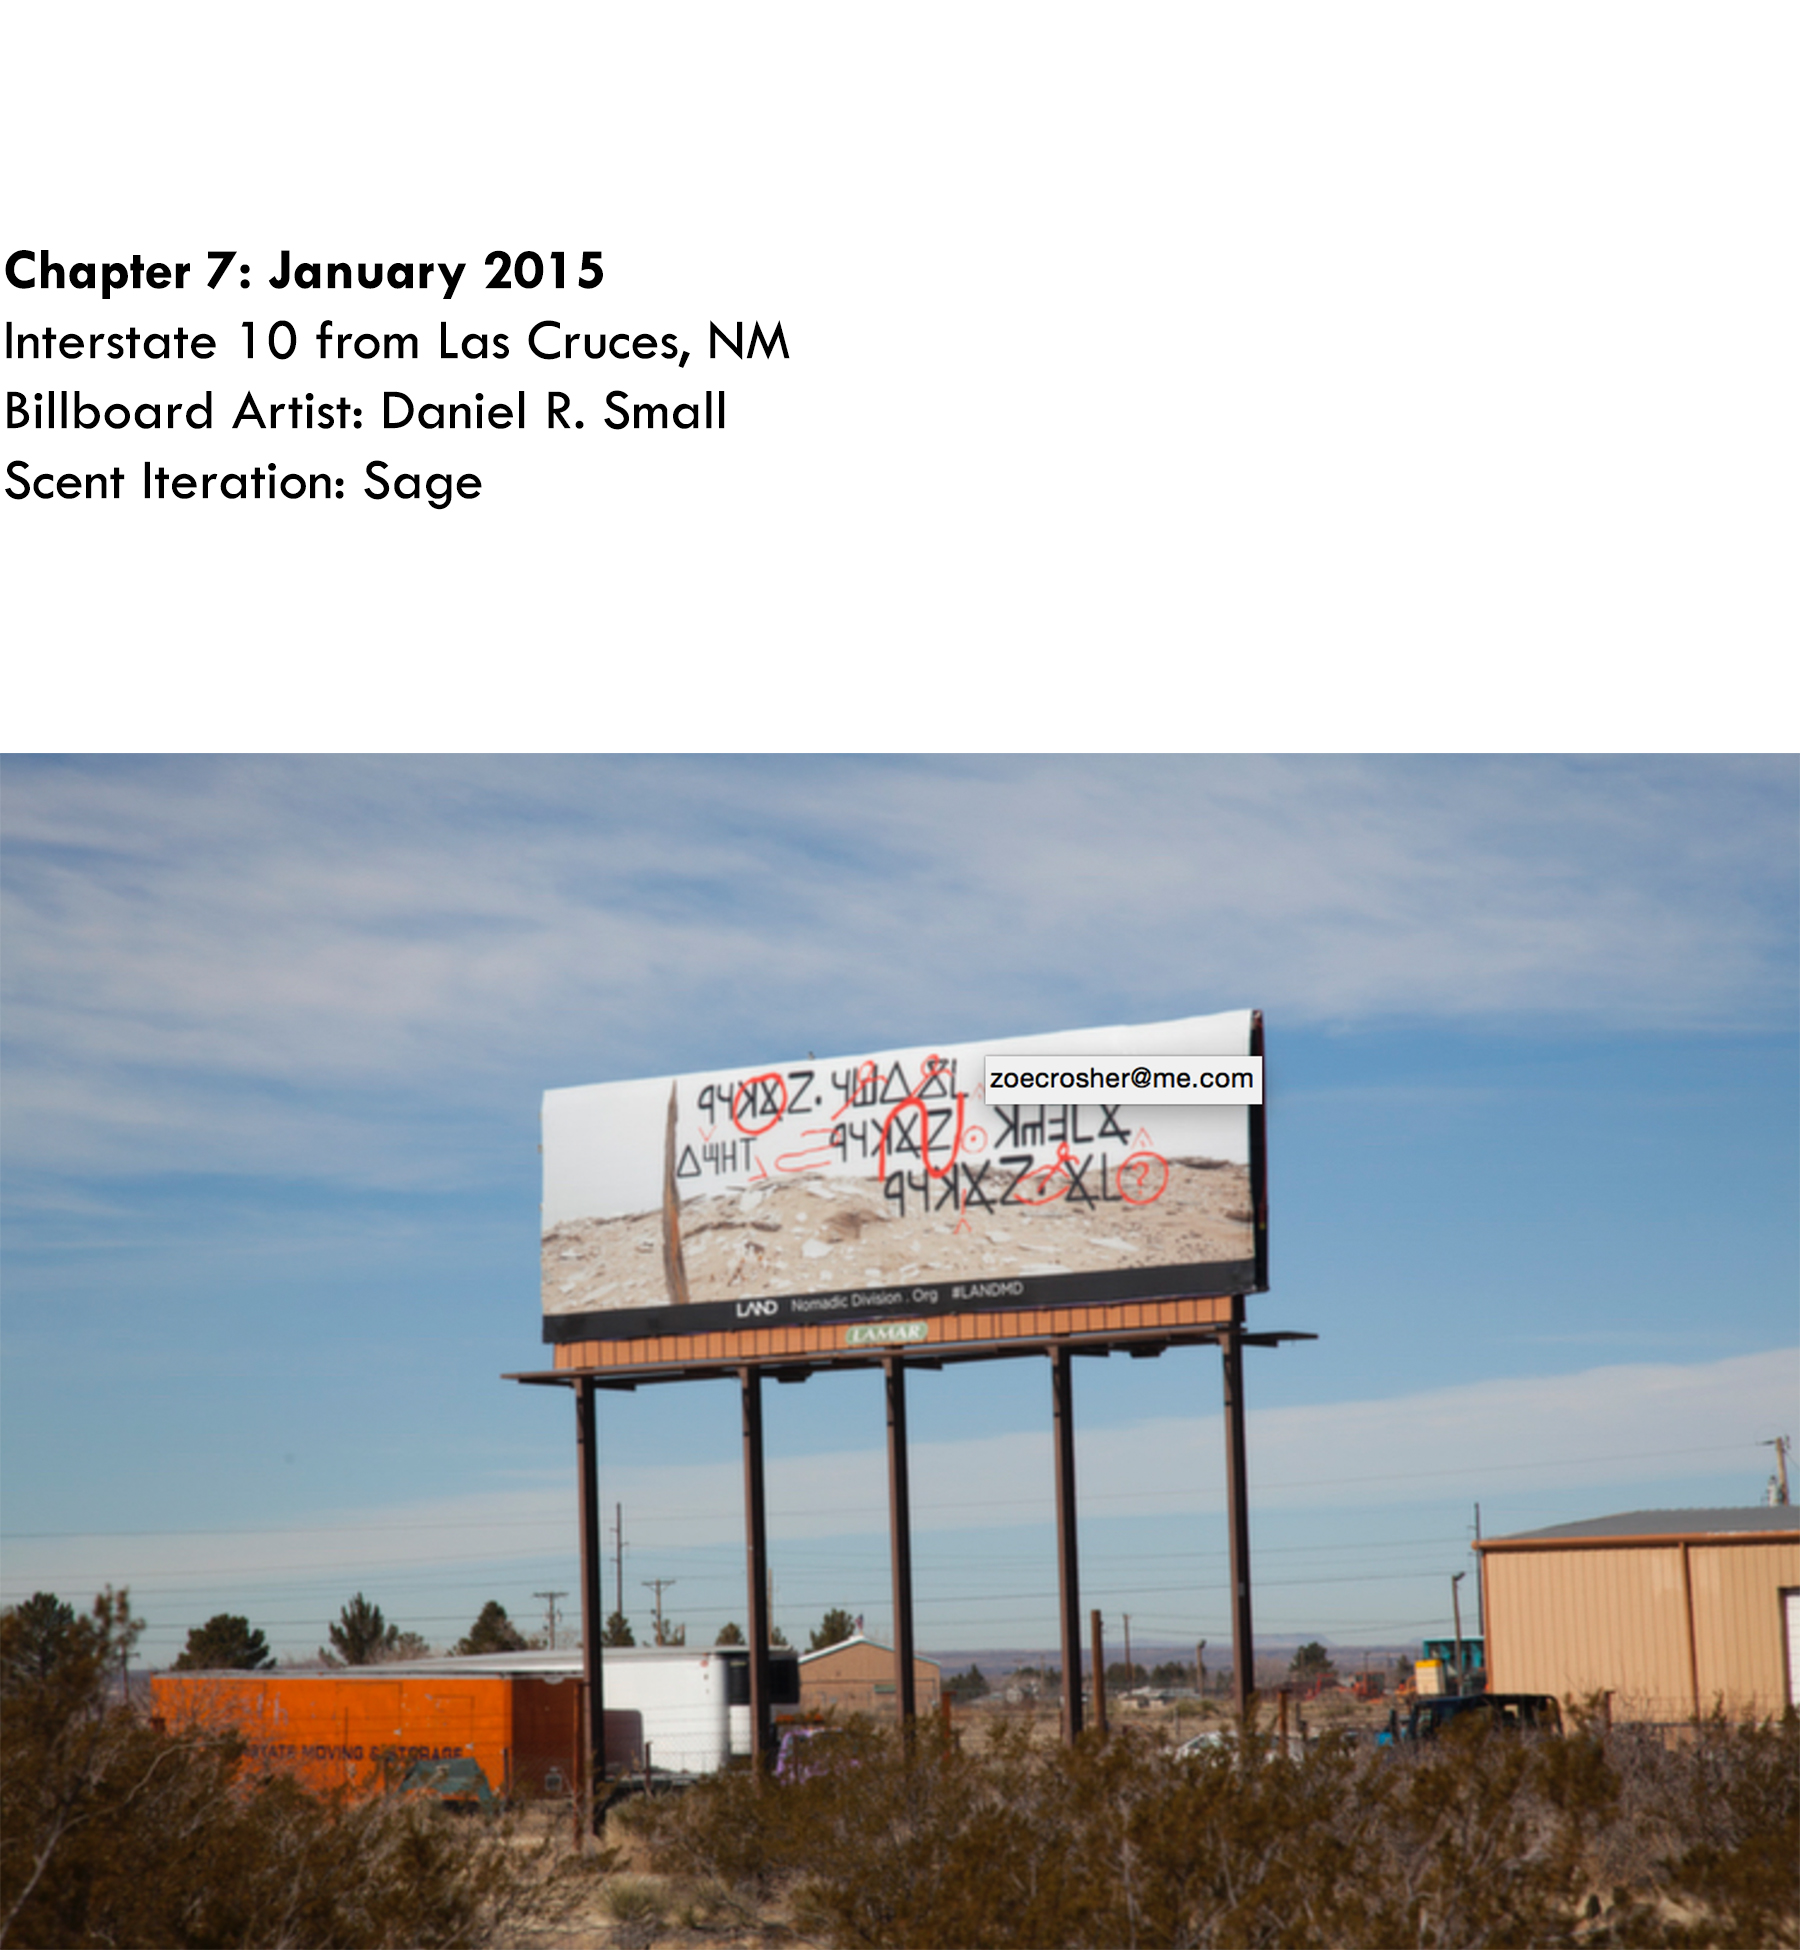 Chapter 7: January 2015, Daniel Small, Interstate 10 from Las Cruces, NM, Scent Iteration: Sage